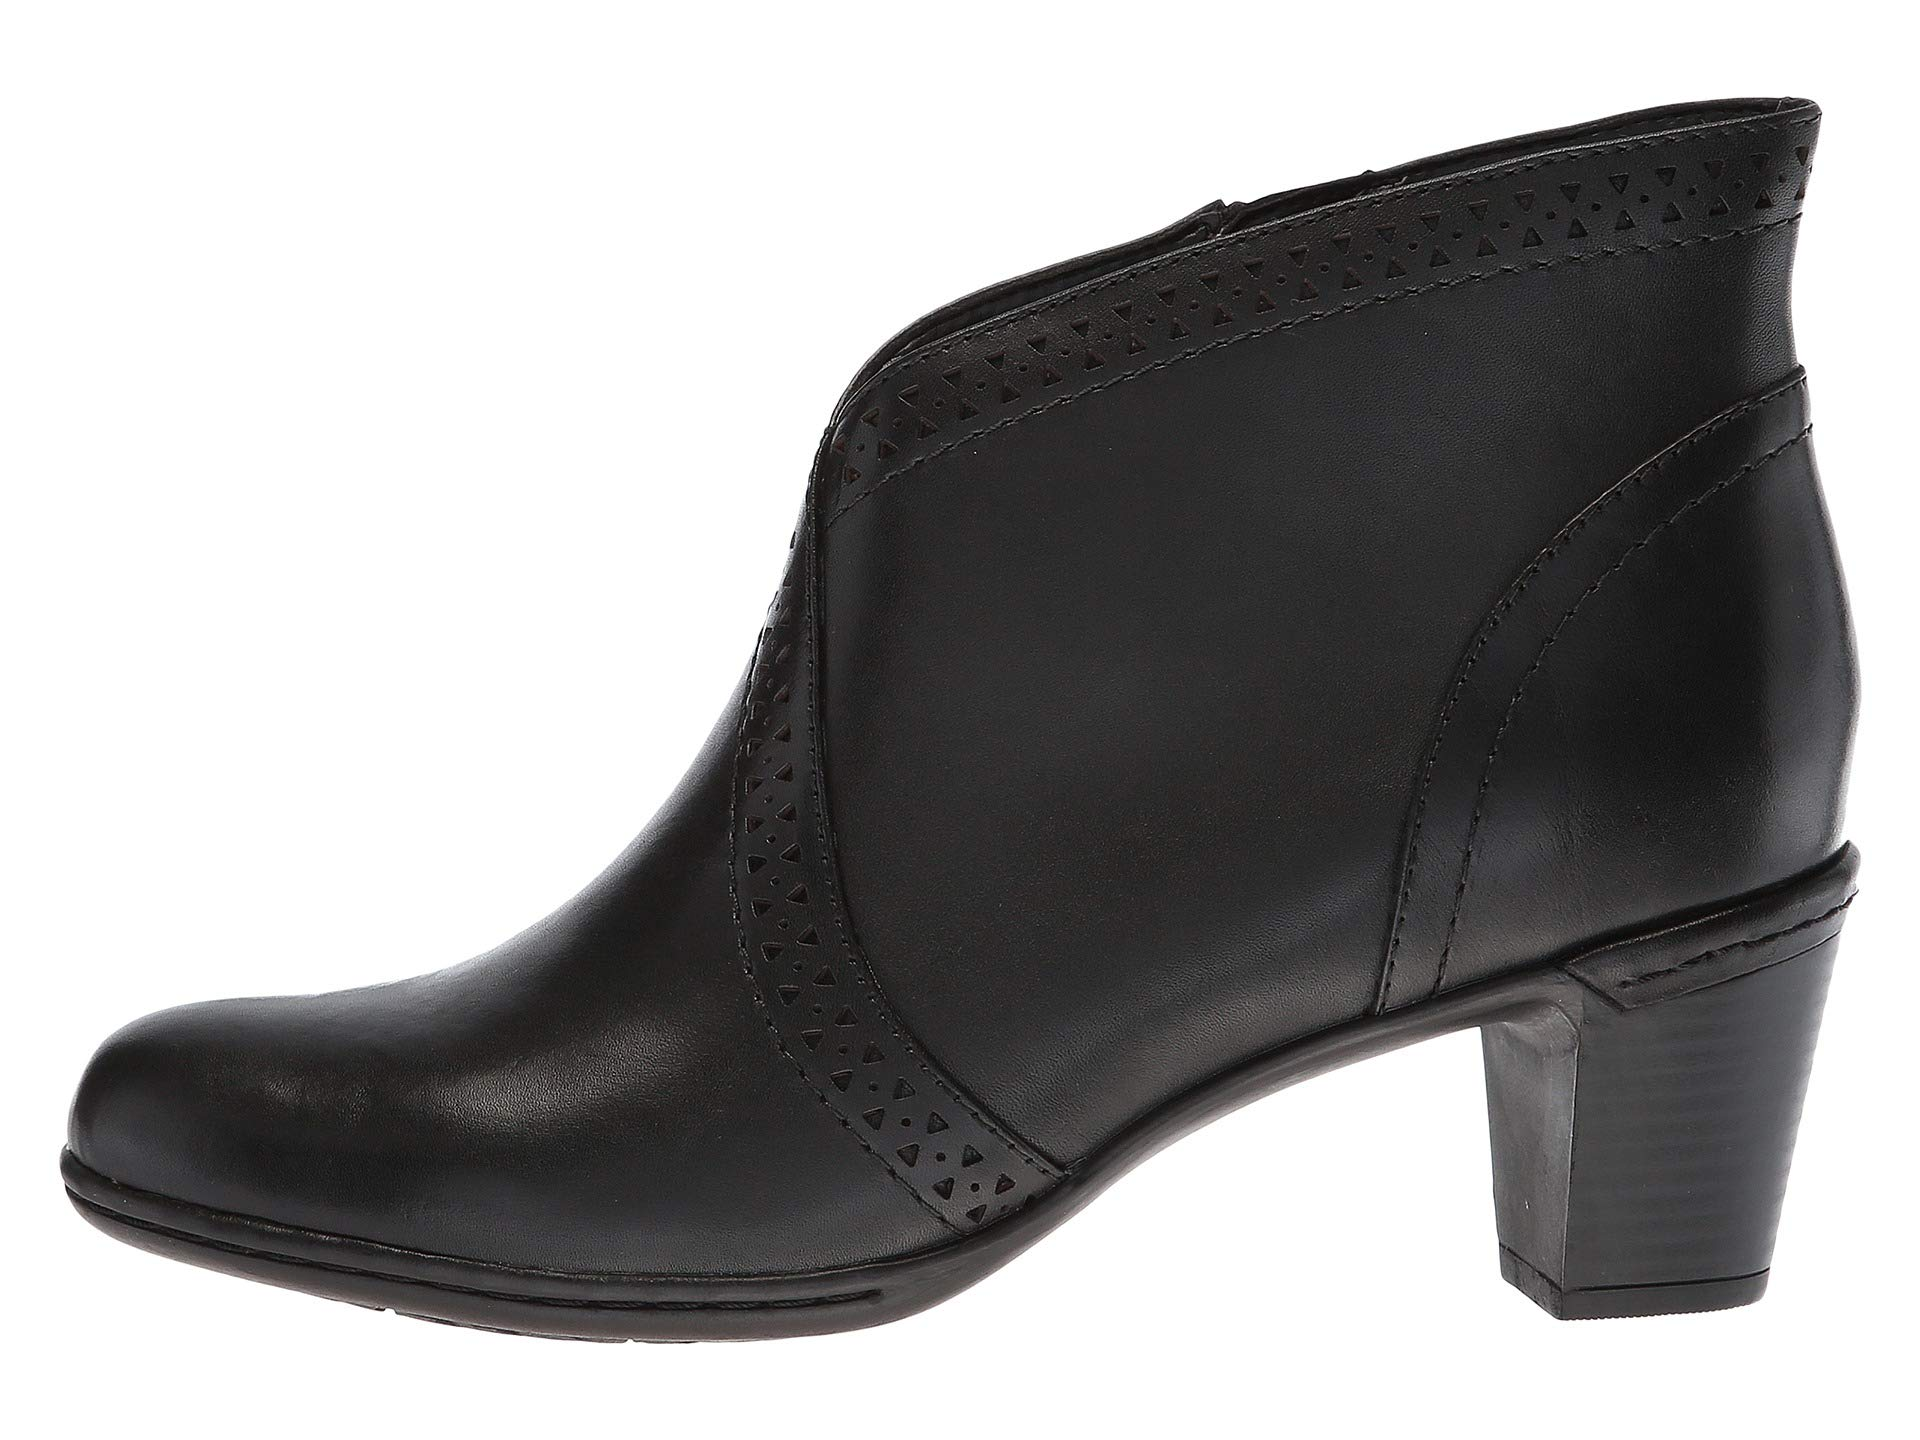 V Black Rockport Rashel Hill Cobb Cut Boot Leather Collection IxH6pwHO